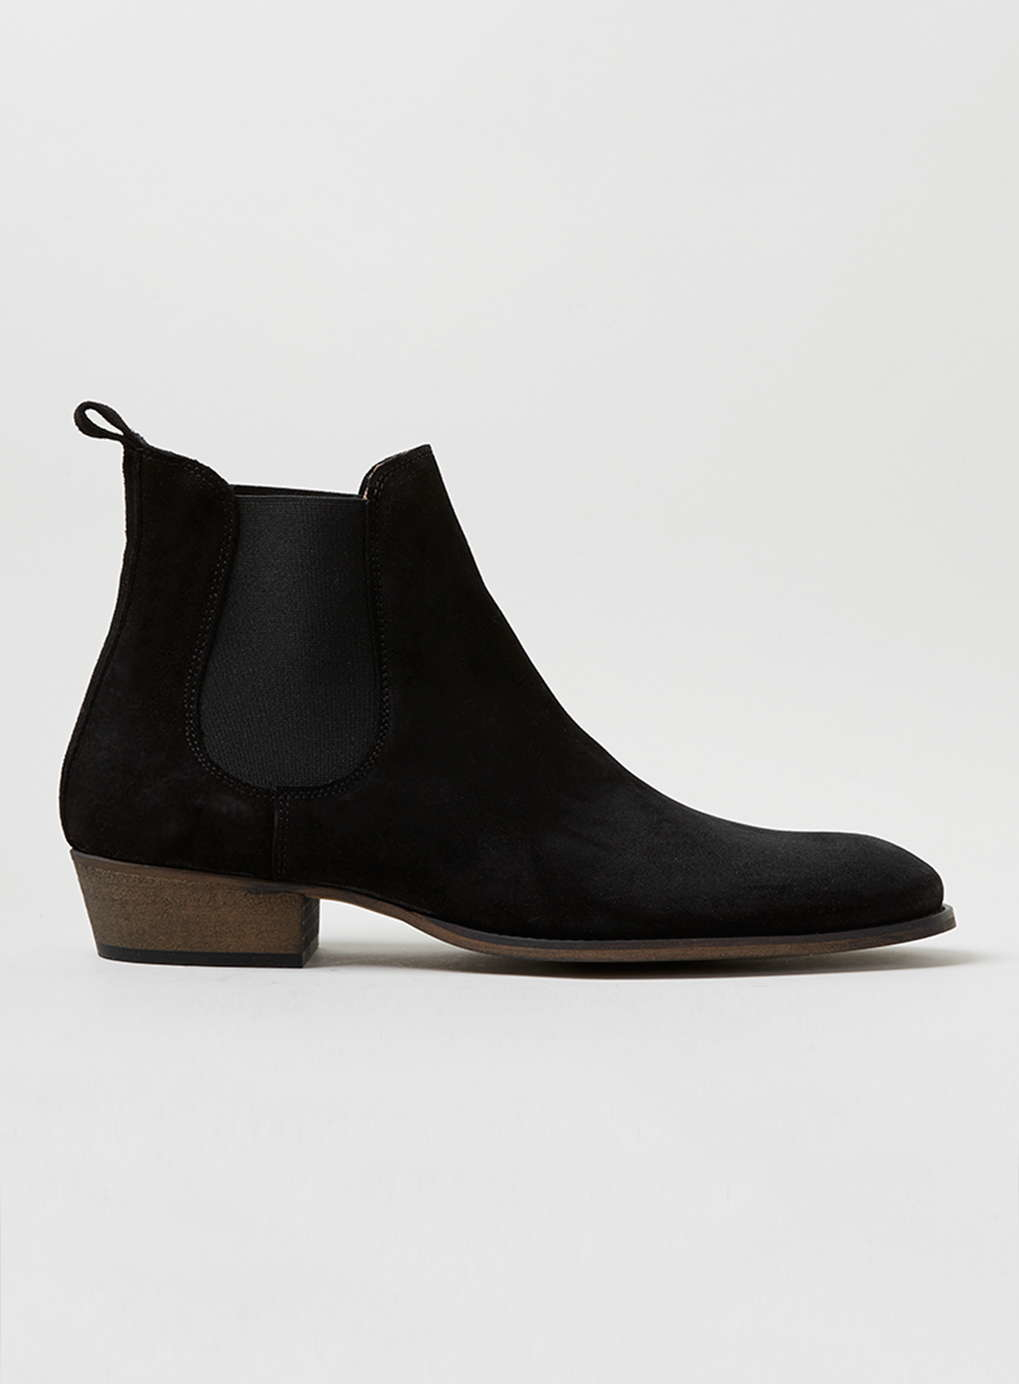 topman black suede chelsea boots in black for men lyst. Black Bedroom Furniture Sets. Home Design Ideas